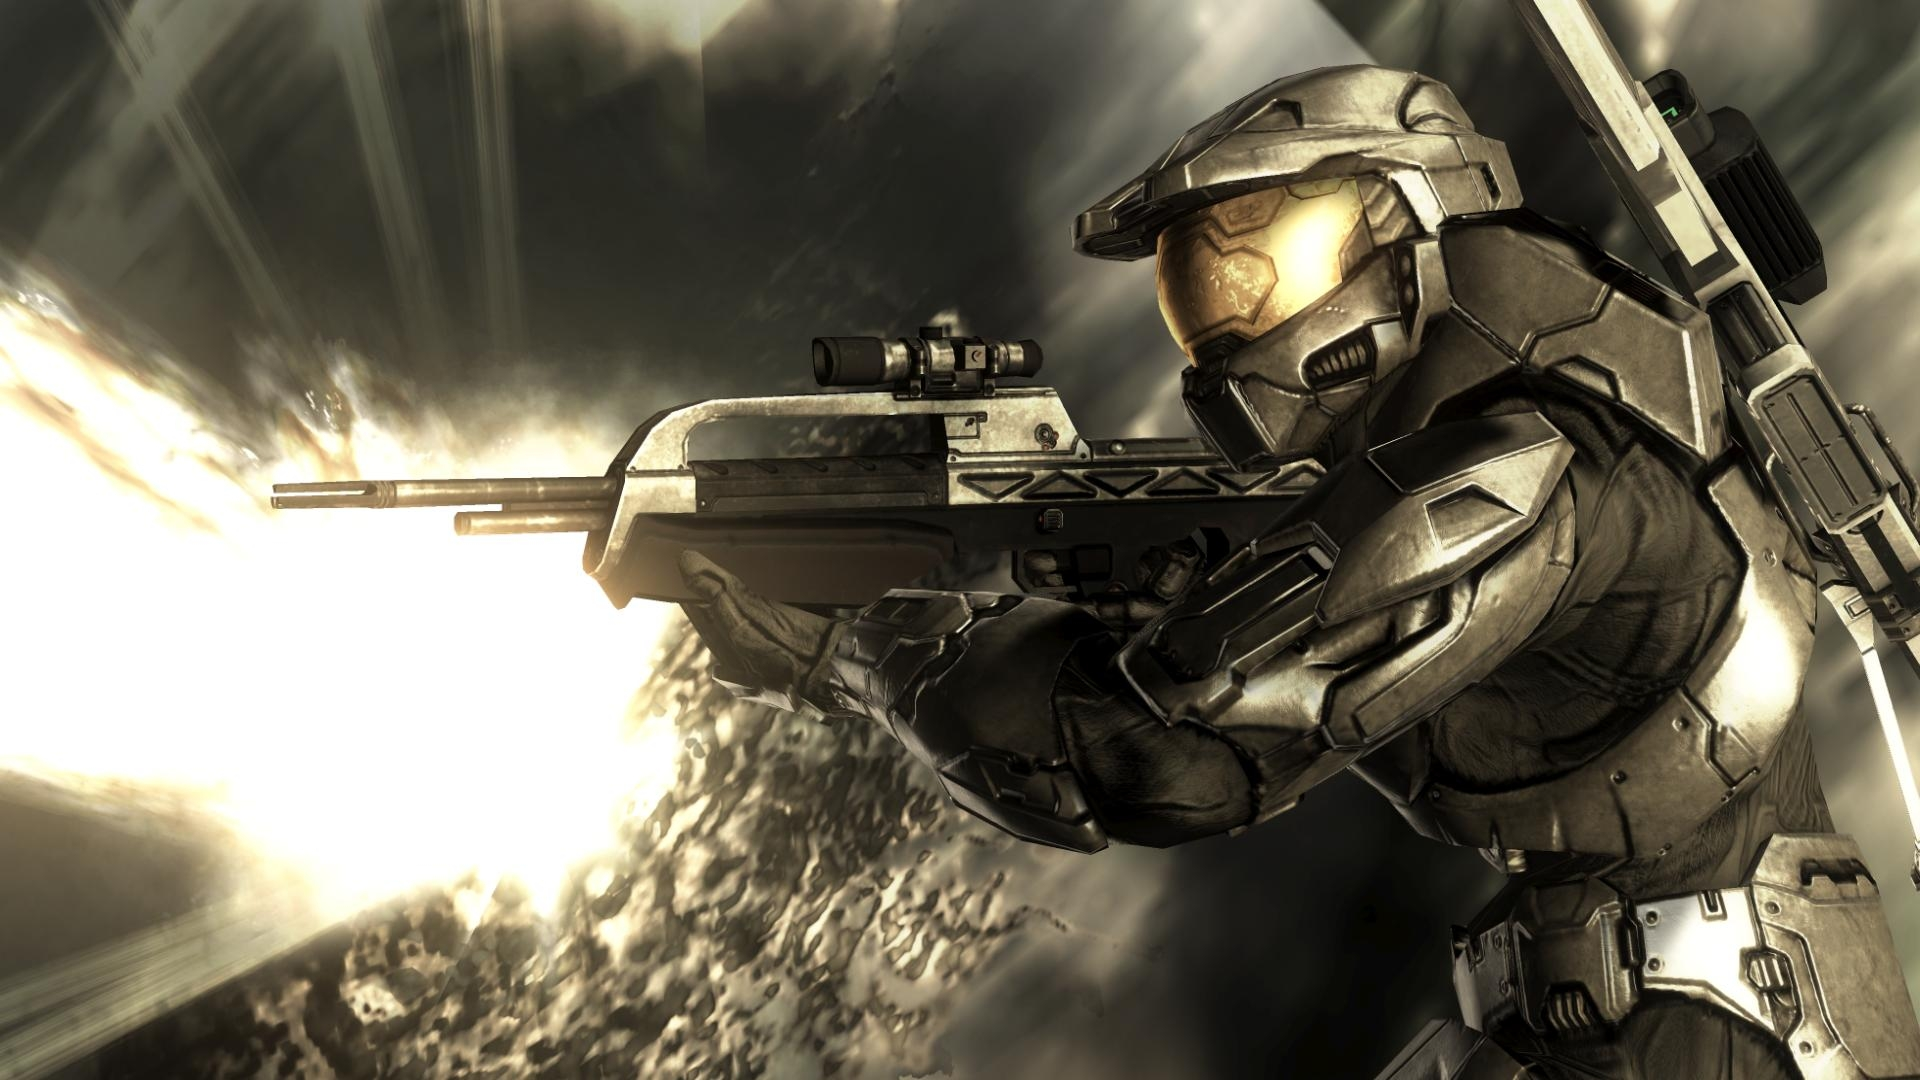 halo 3 wallpaper 1920x1080 3927309 - studentskeborbe